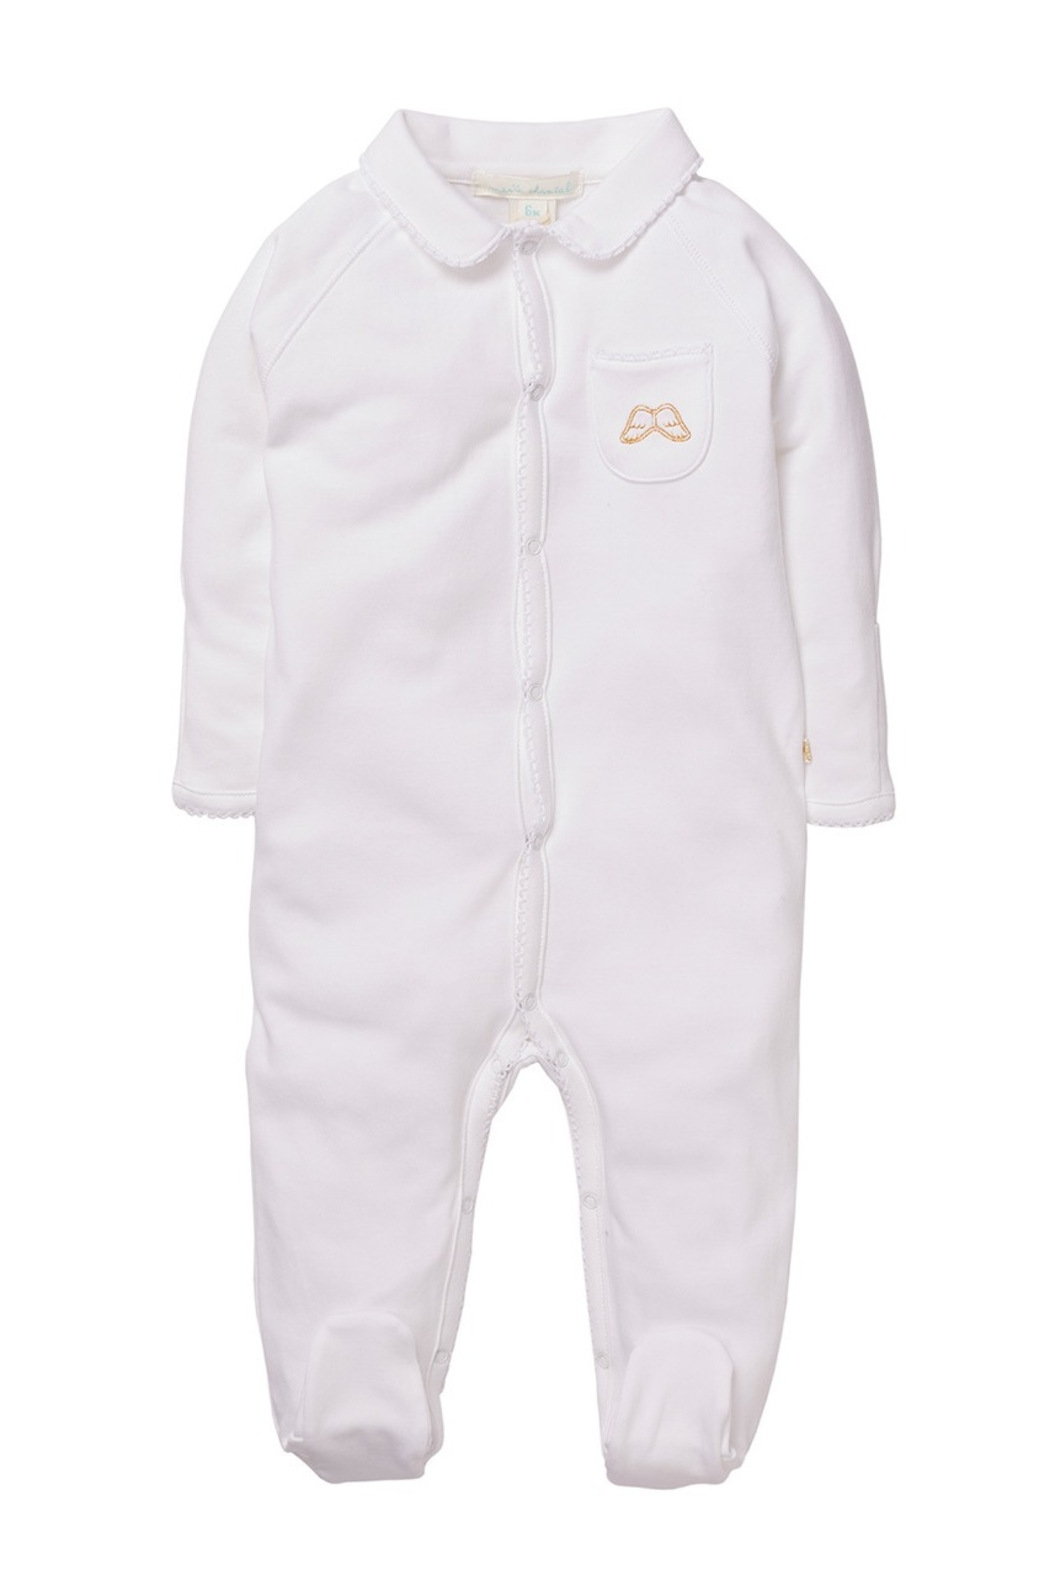 Marie Chantal Angel Wing Onesie With Mittens - Main Image